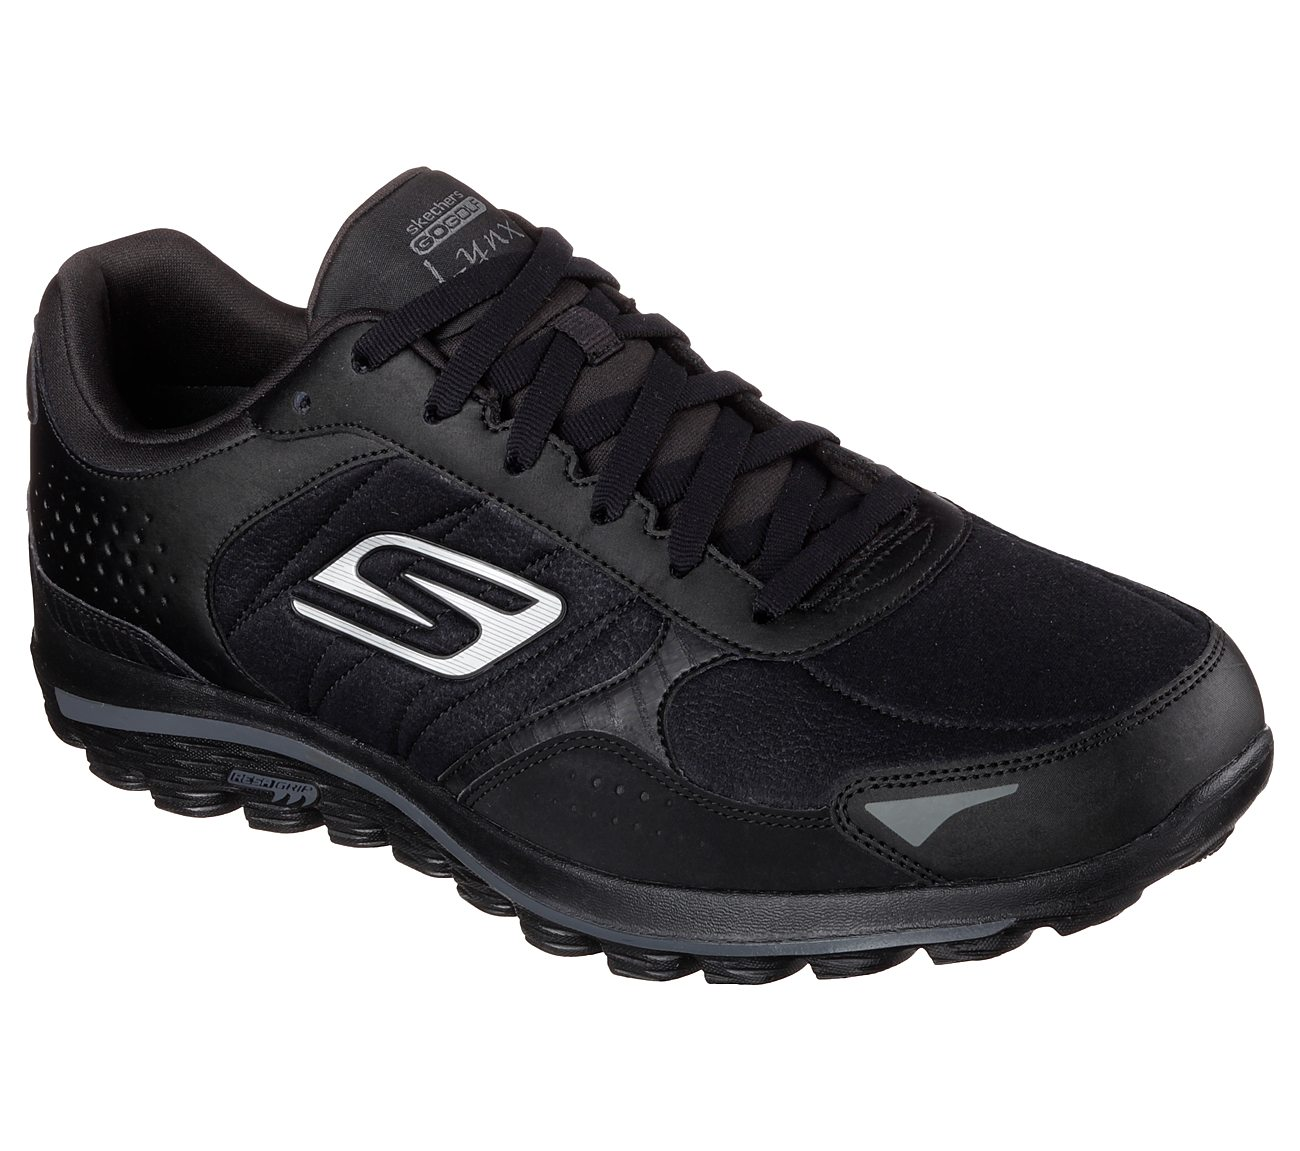 Skechers GOwalk 2 Golf Lynx LT